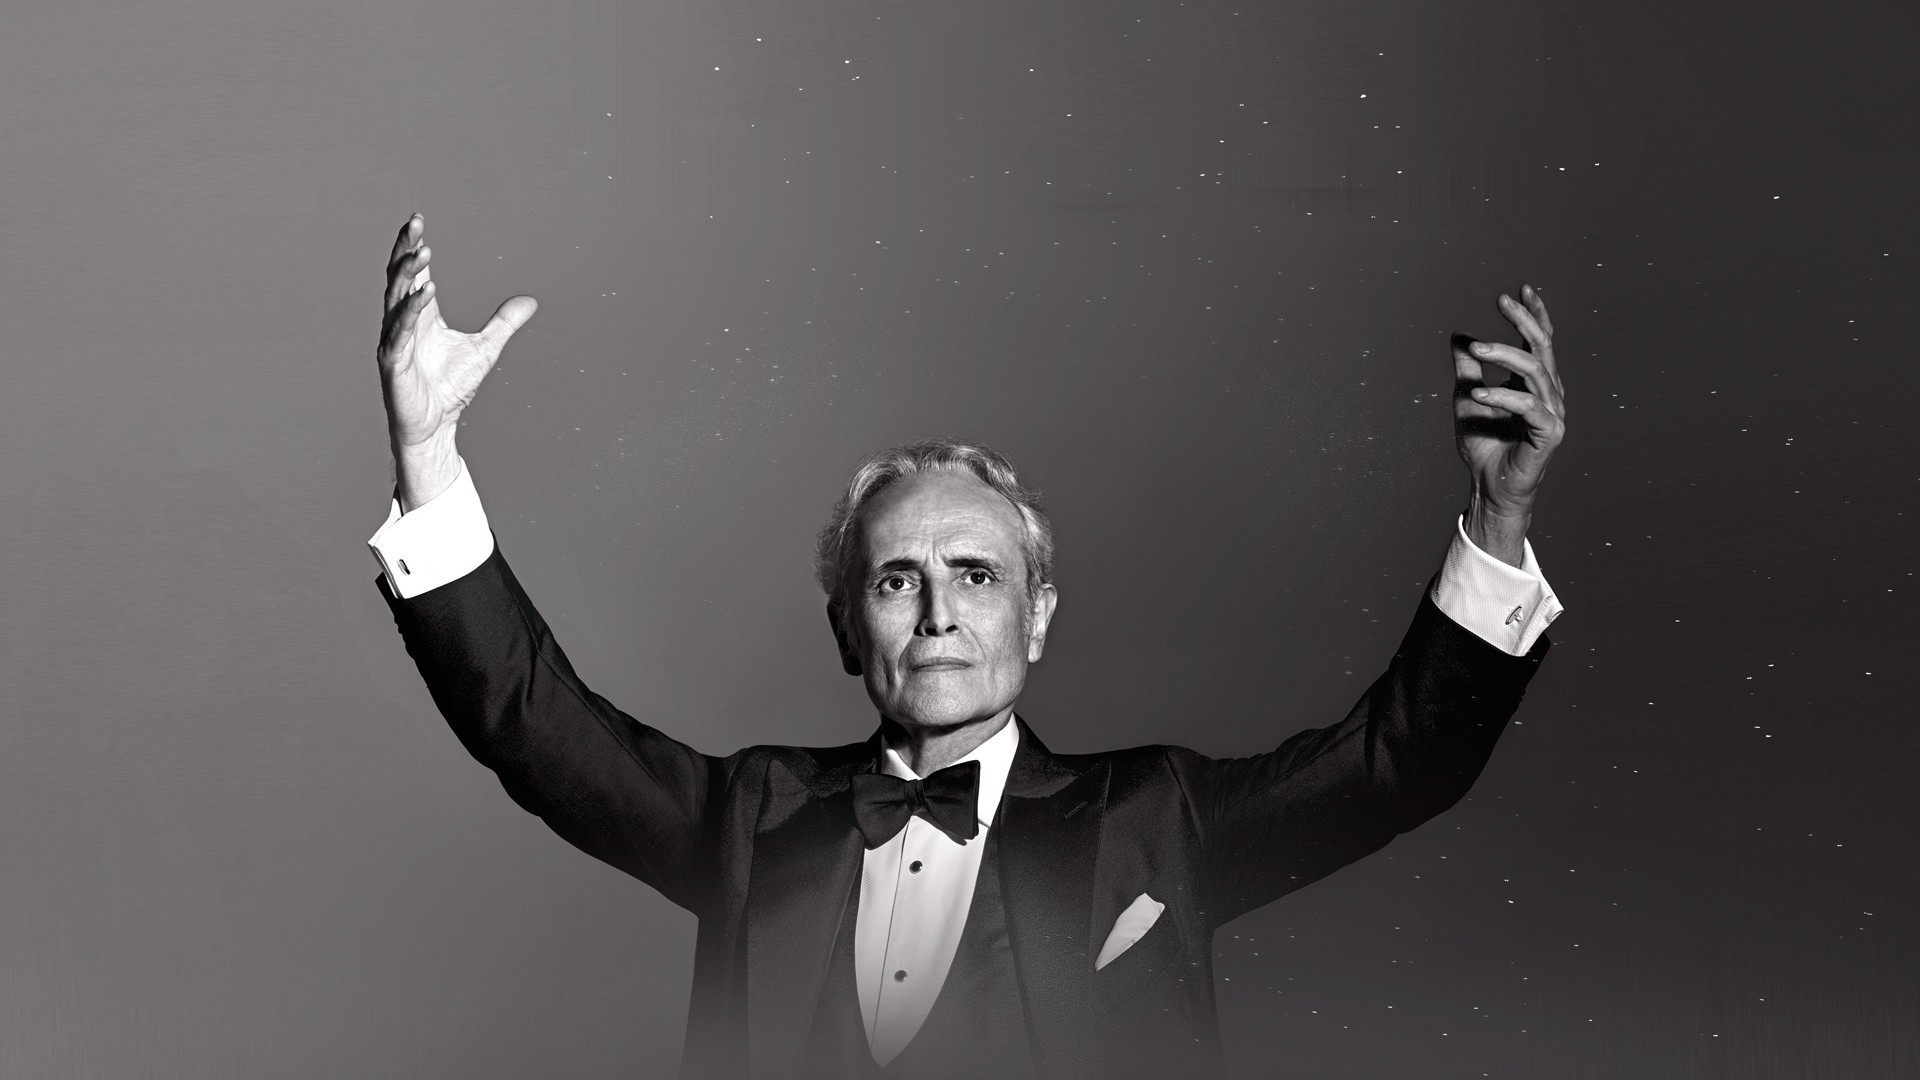 José Carreras Sings with the Moscow City Symphony Orchestra - Russian Philharmonic